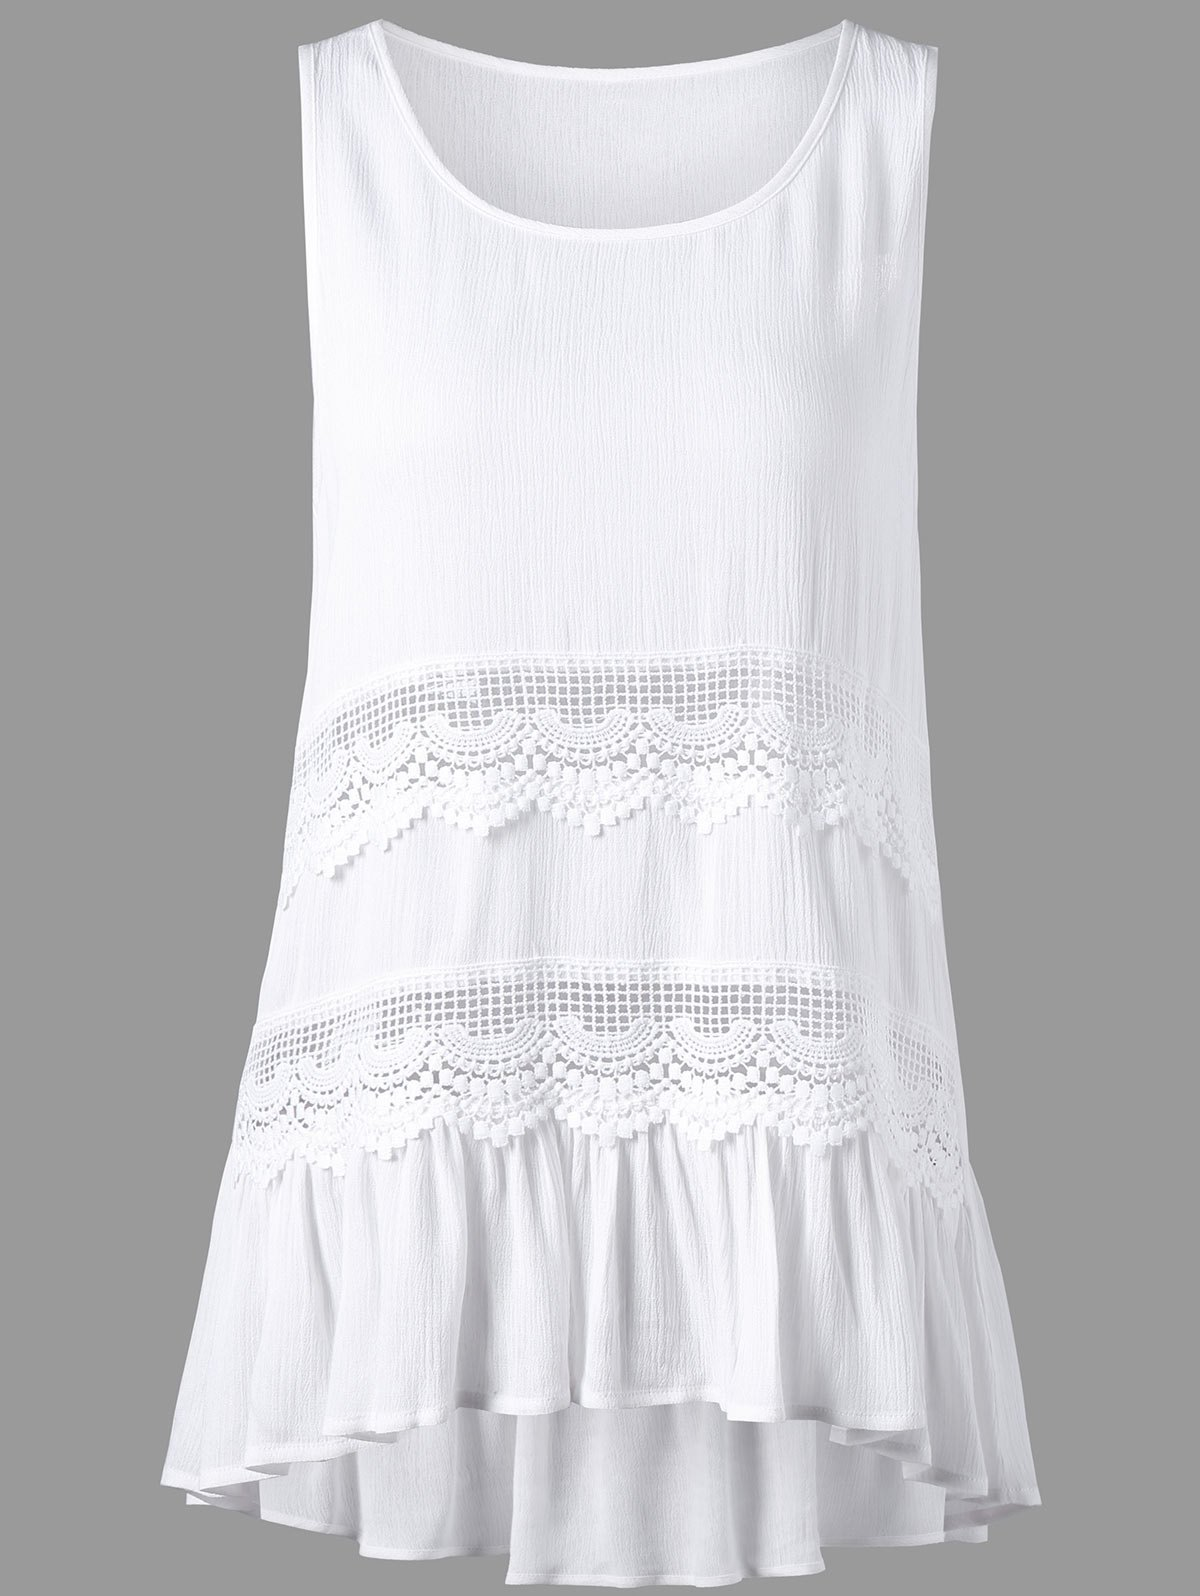 New Sleeveless Openwork Insert High Low Hem Blouse